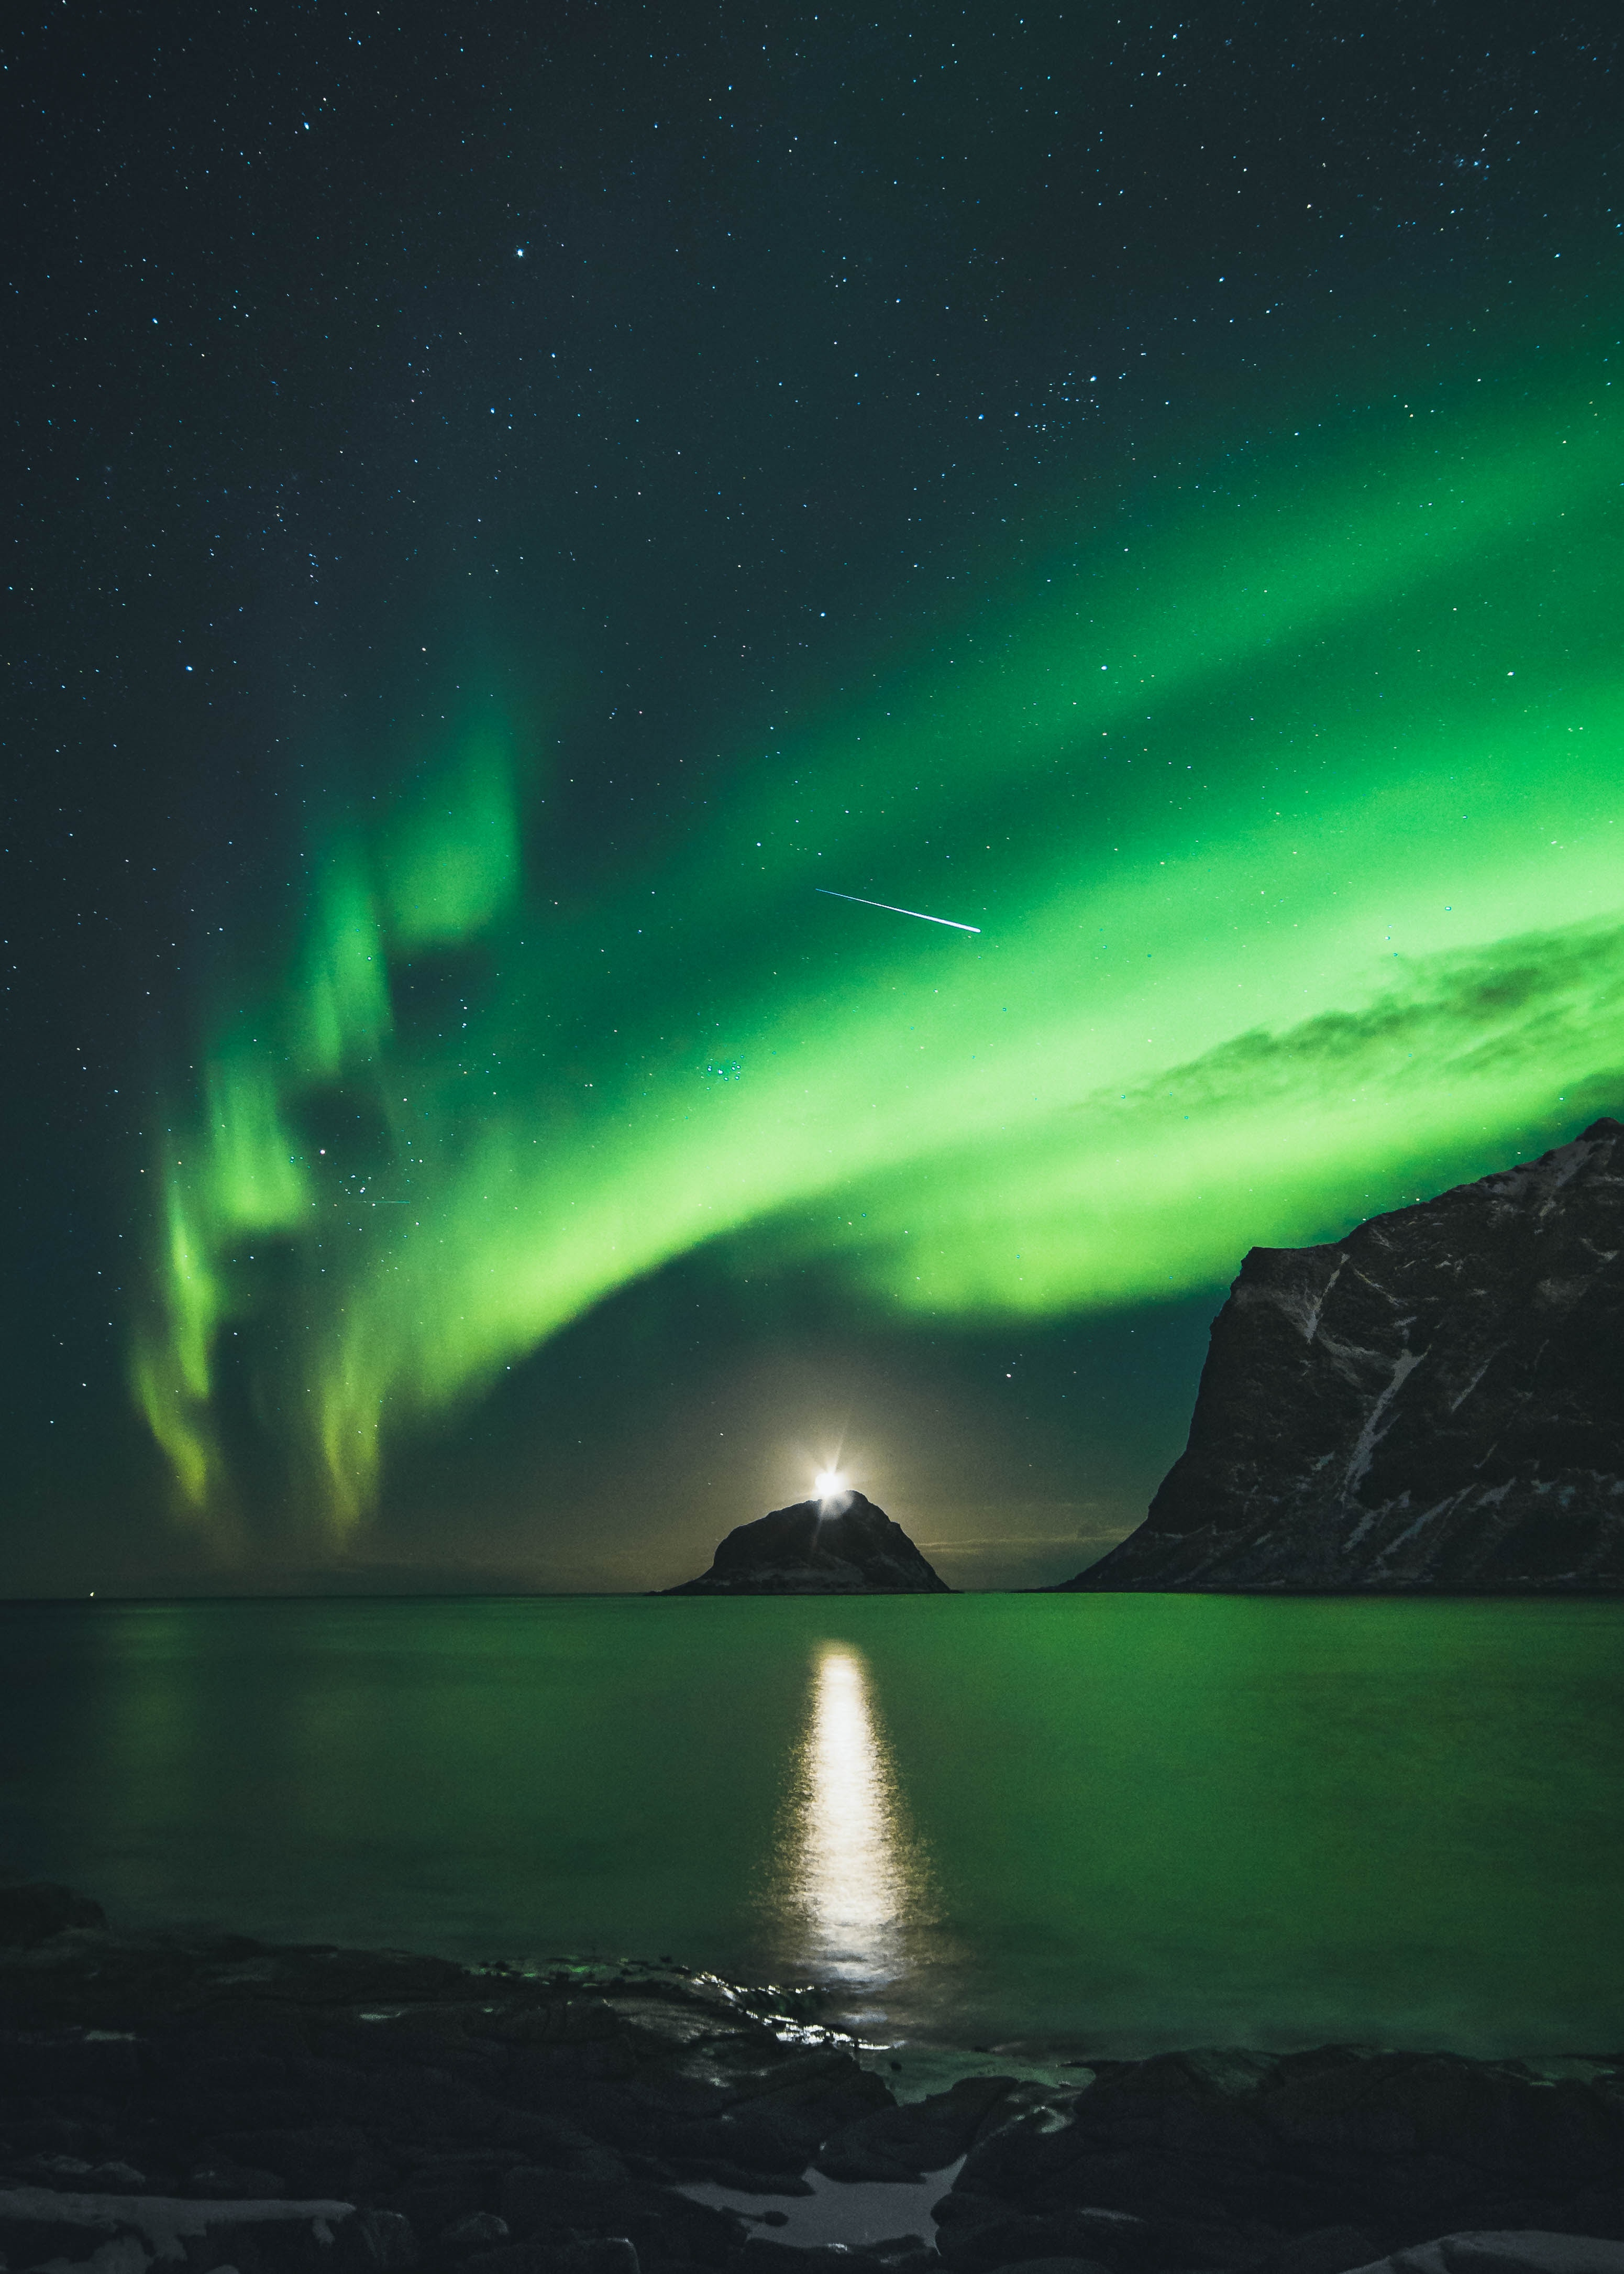 127620 download wallpaper Night, Nature, Mountains, Shining, Lake, Northern Lights, Aurora Borealis, Aurora screensavers and pictures for free